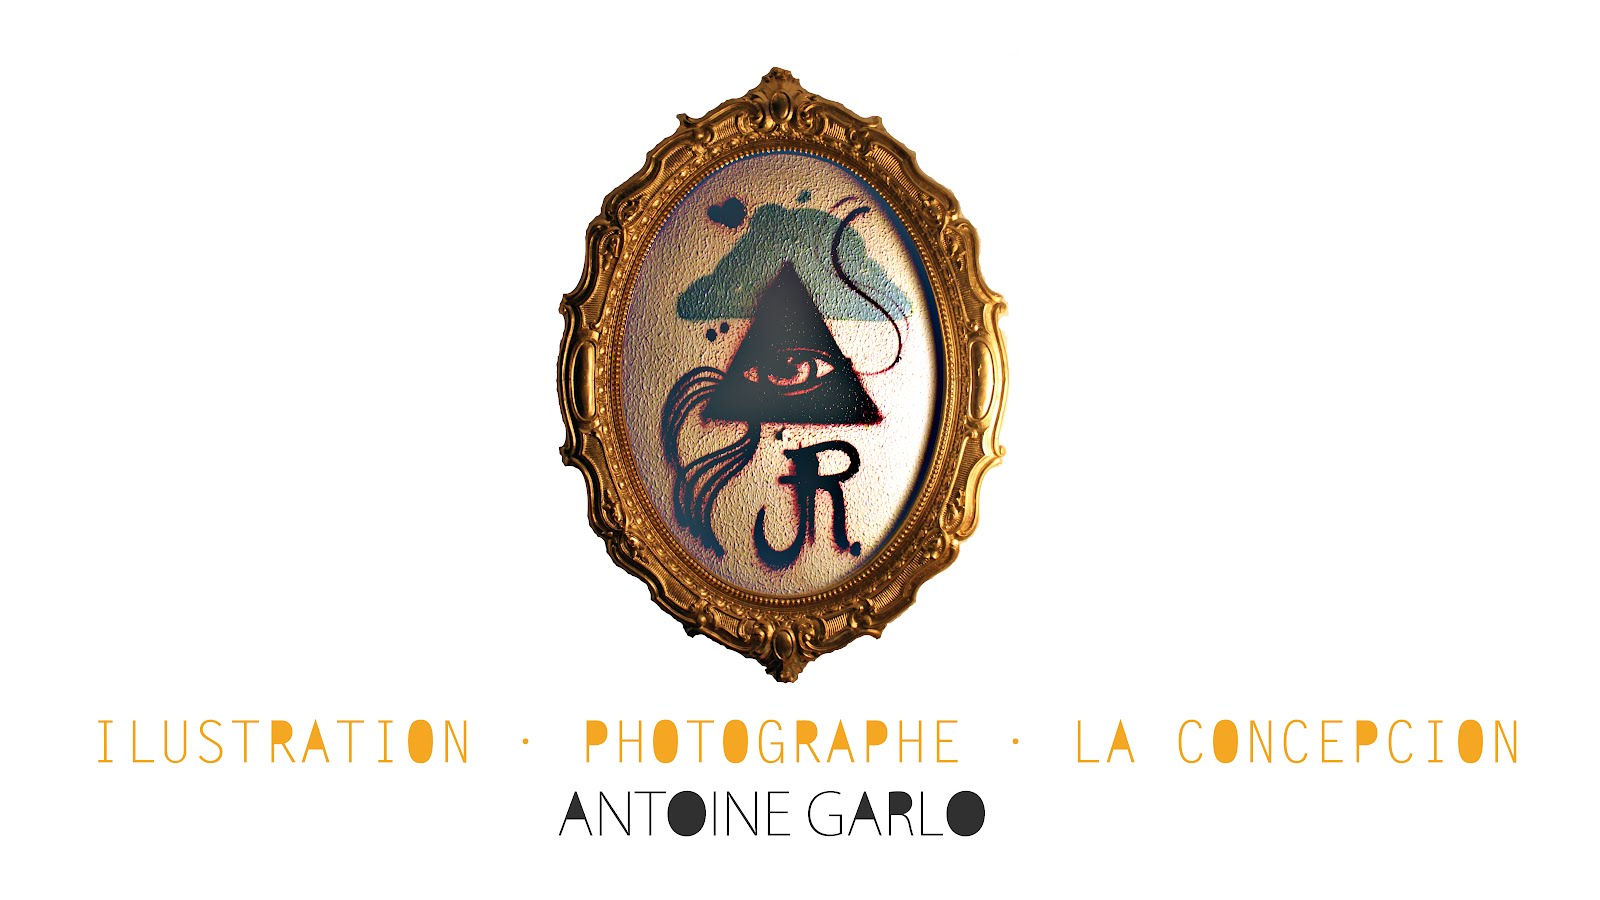 Antoine Garlo